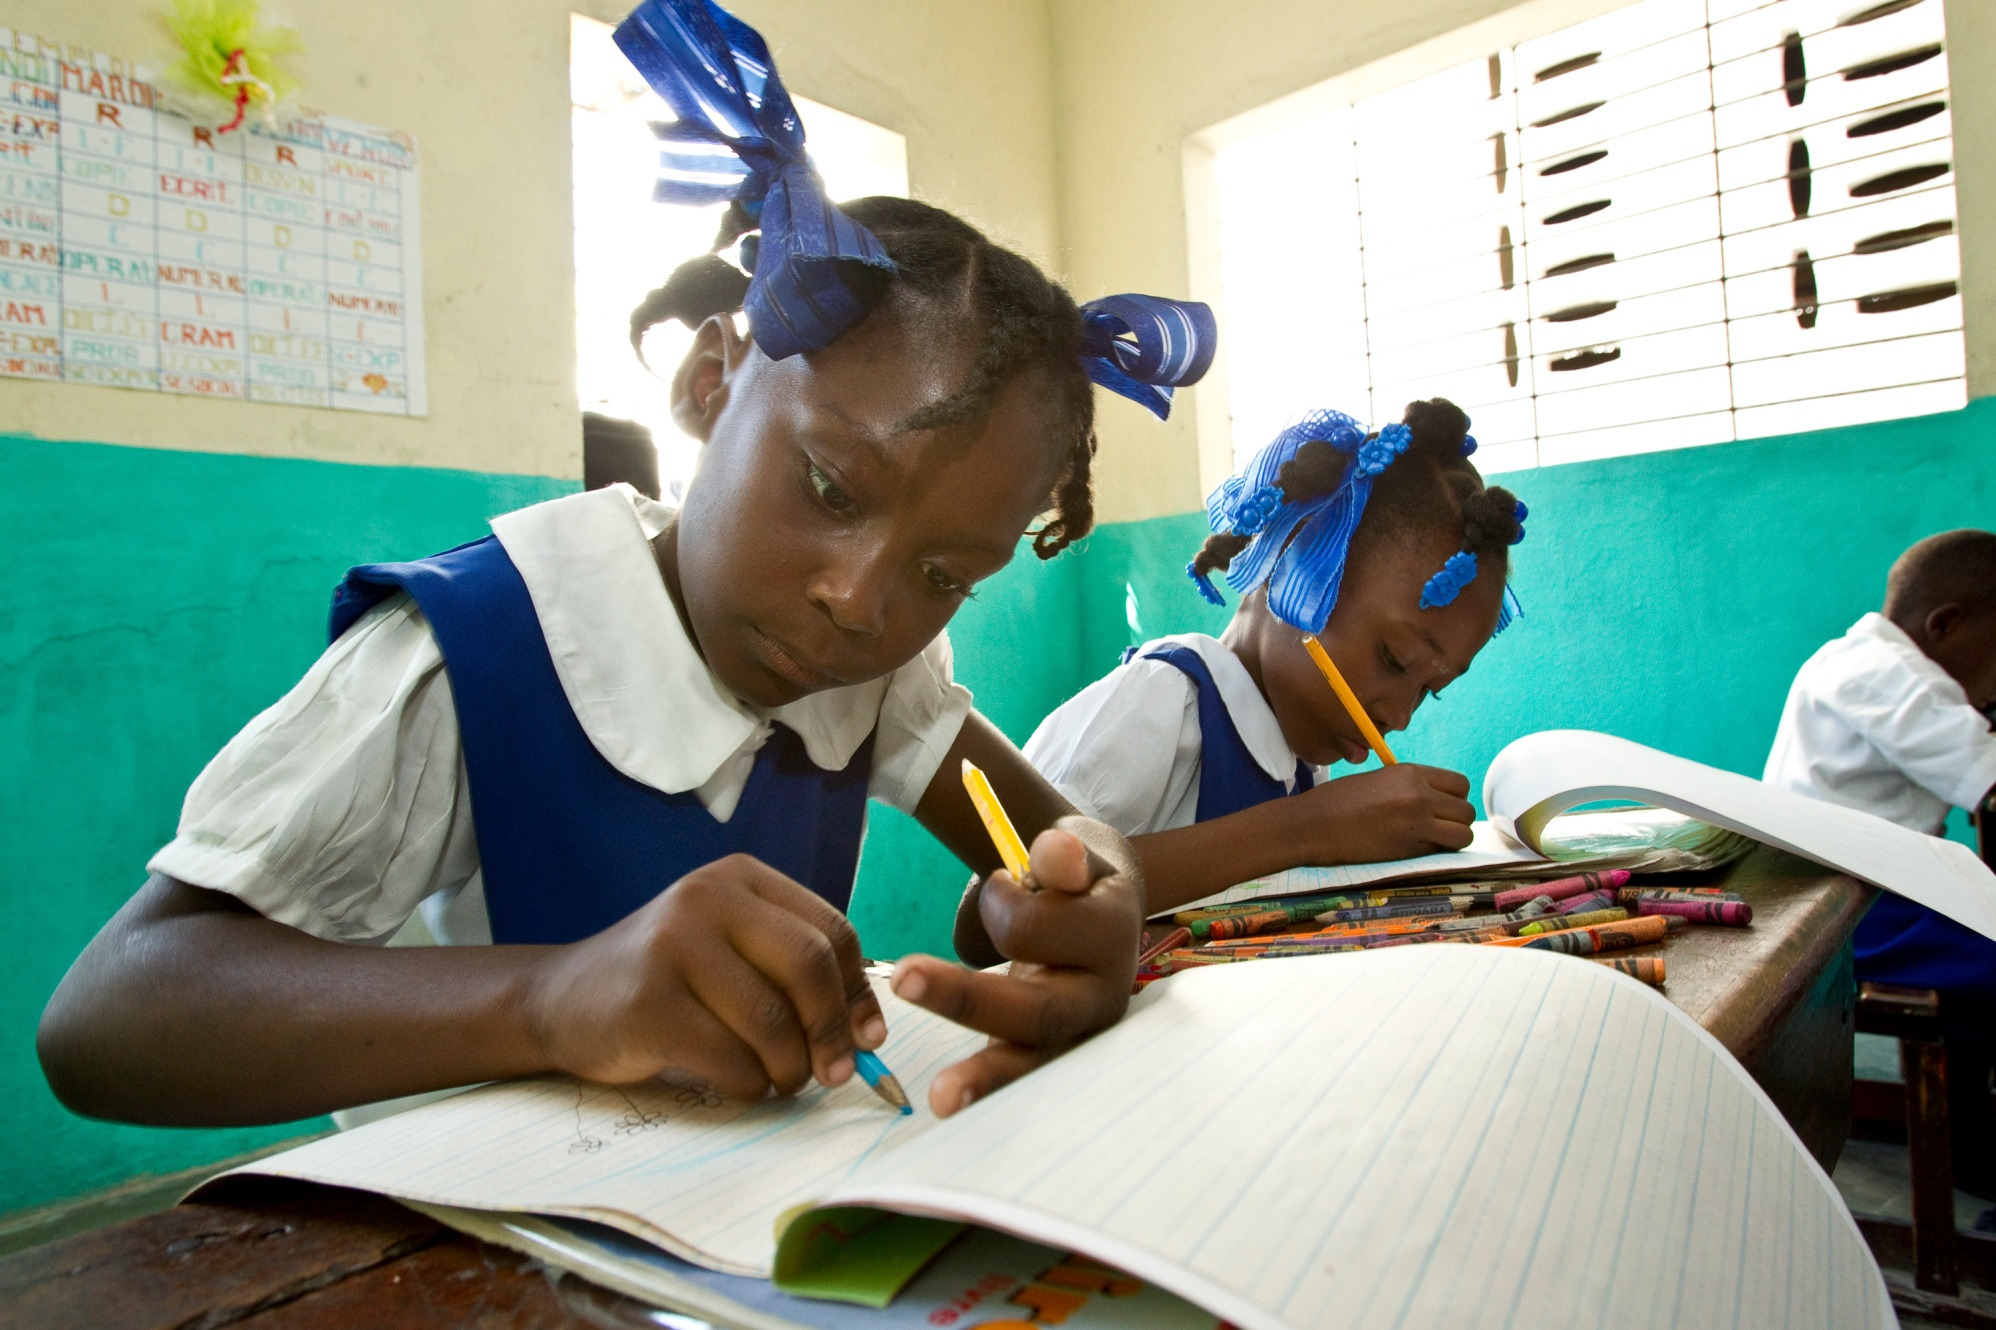 Students at Sainte Famille elementary school in Cayes, Haiti, draw pictures. The school was rebuilt after the 2010 earthquake in Haiti using funds donated to The Rotary Foundation's Haiti Earthquake Relief Fund.